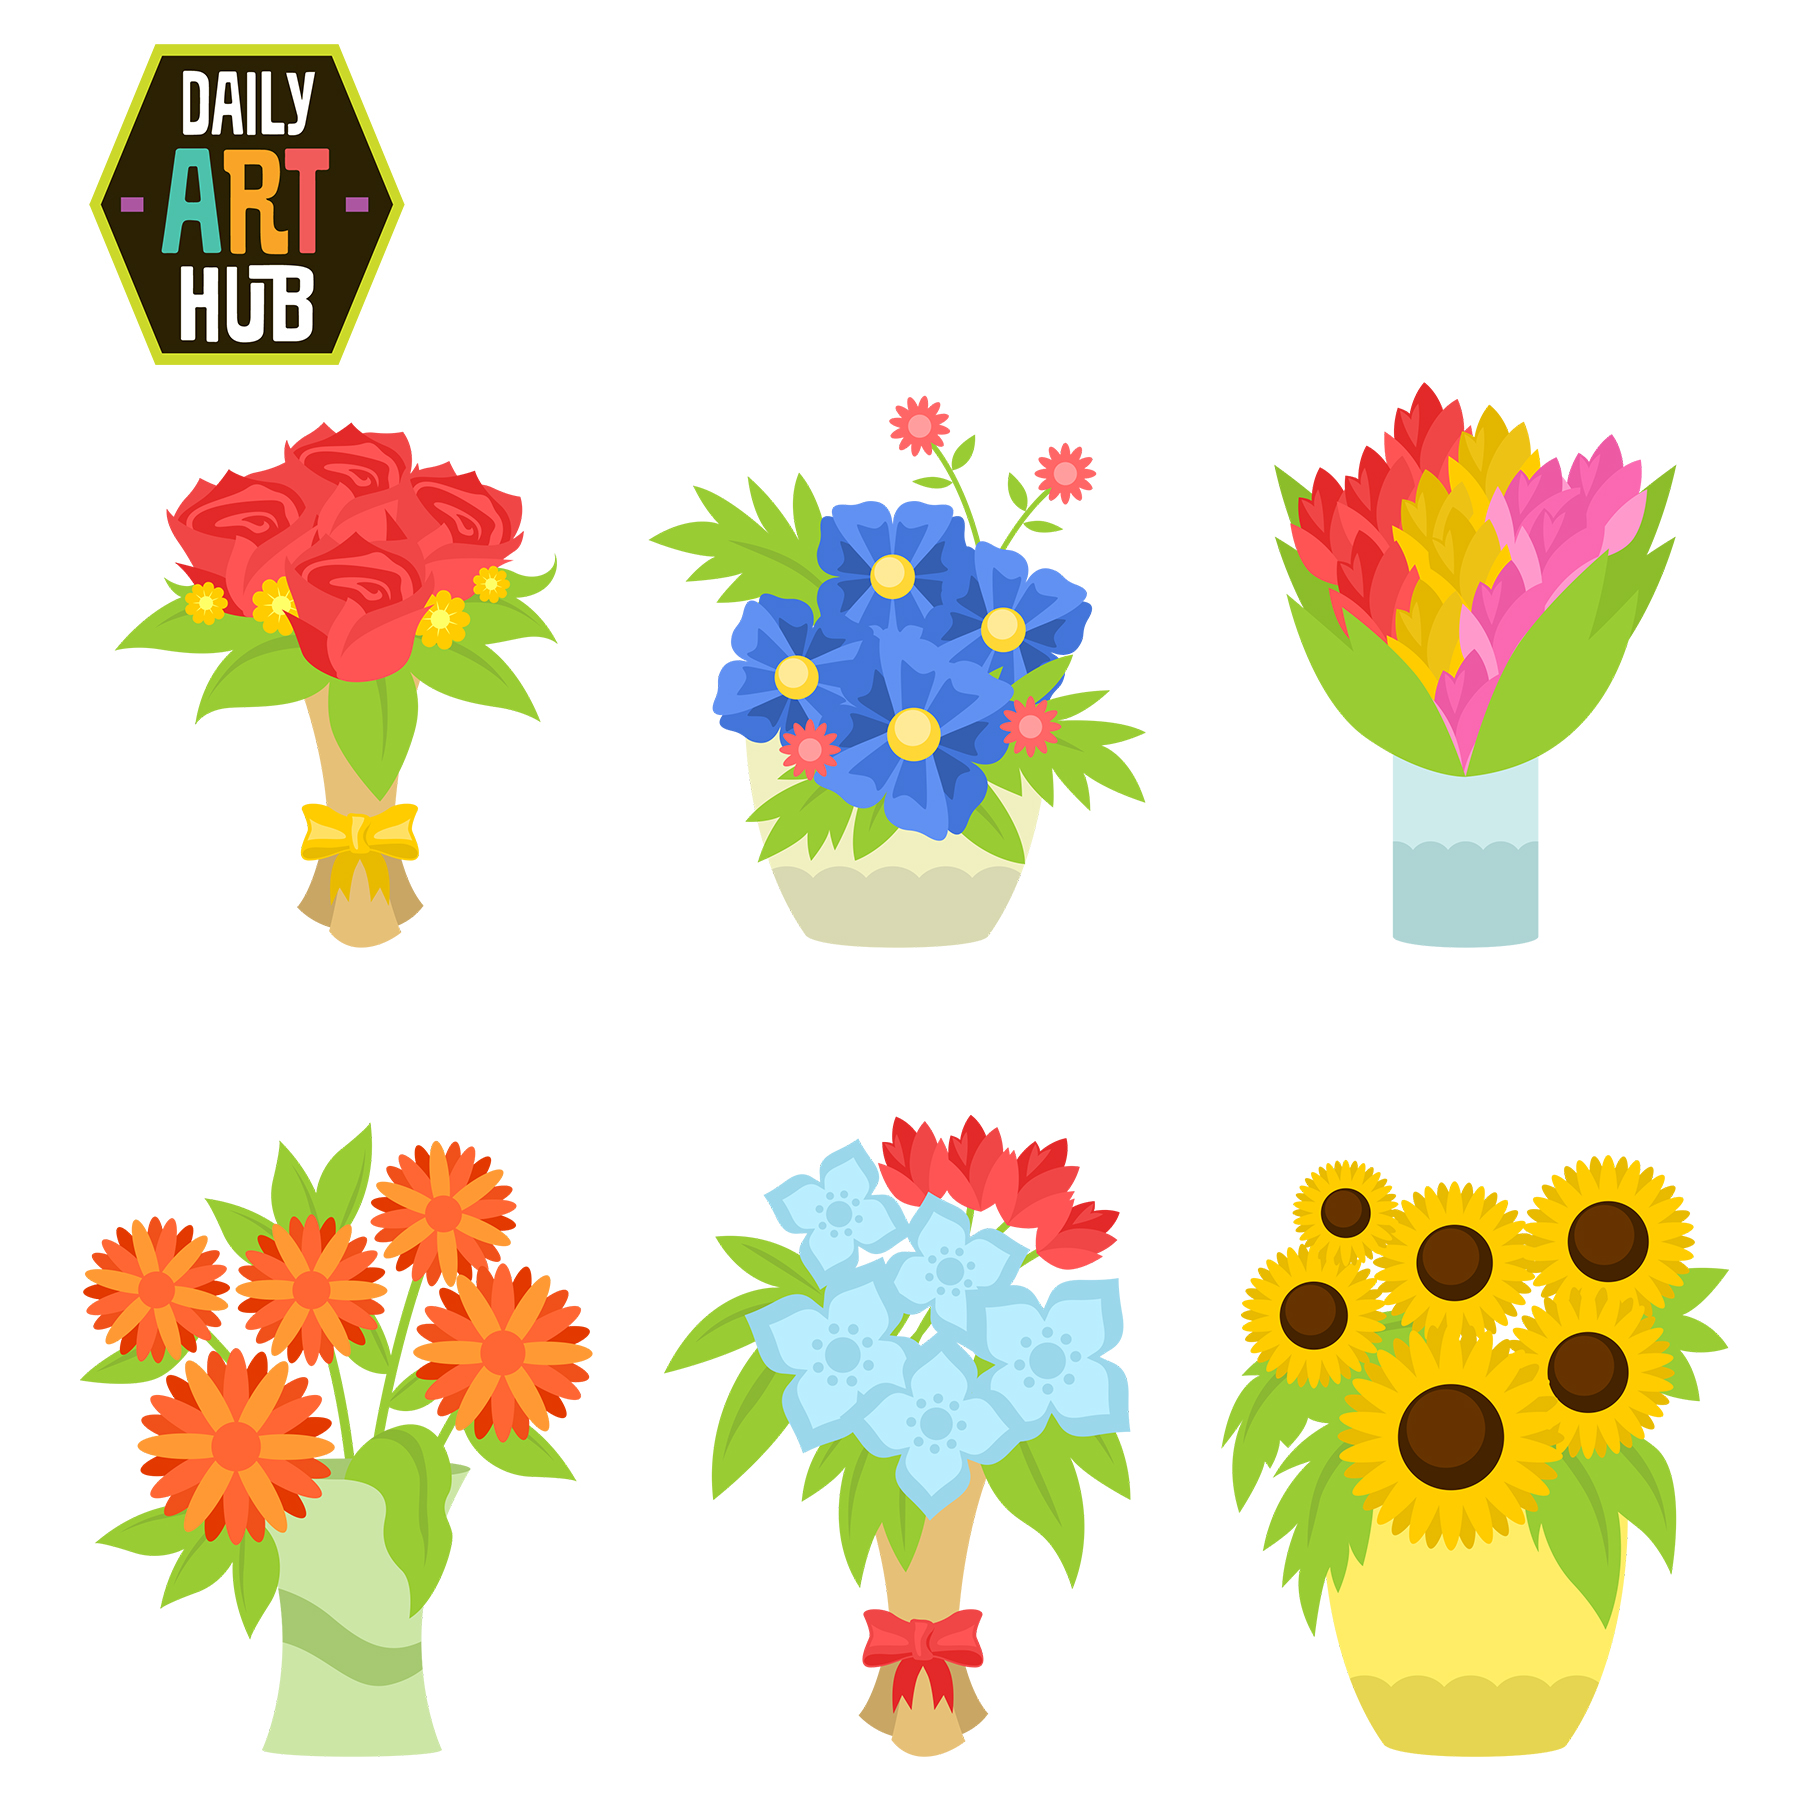 Flower bouquet clip art set daily art hub free clip art everyday flower bouquet clip art set izmirmasajfo